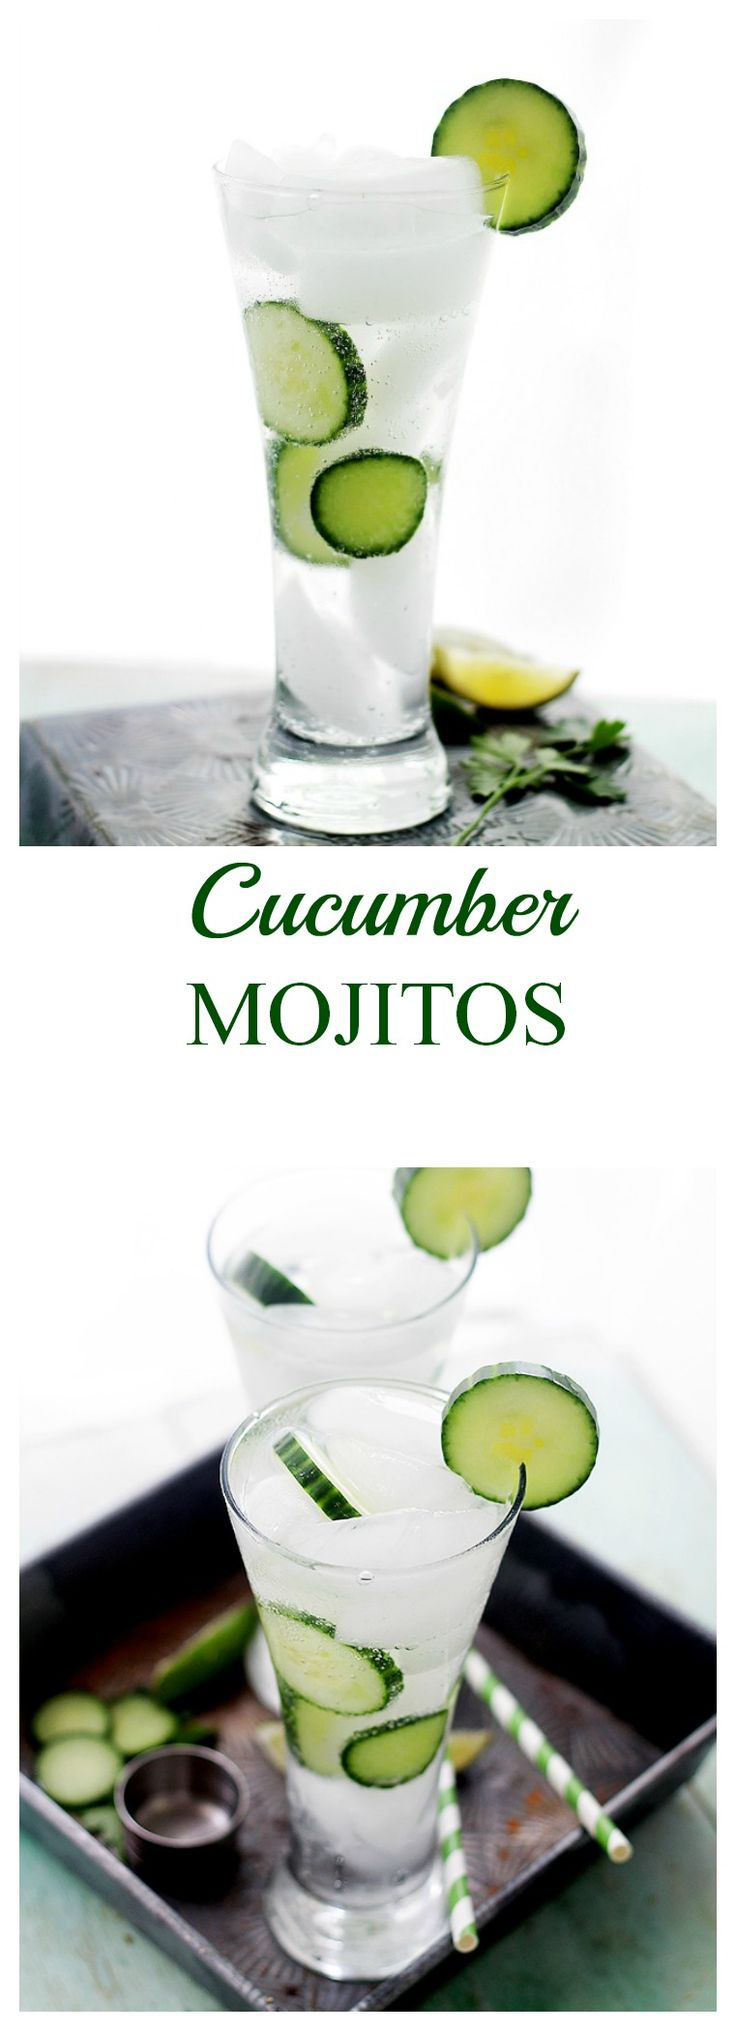 Cucumber Mojito | www.diethood.com | A delicious and refreshing twist on the classic mojito cocktail made with the addition of cucumbers. | #mojitos #stpaddy